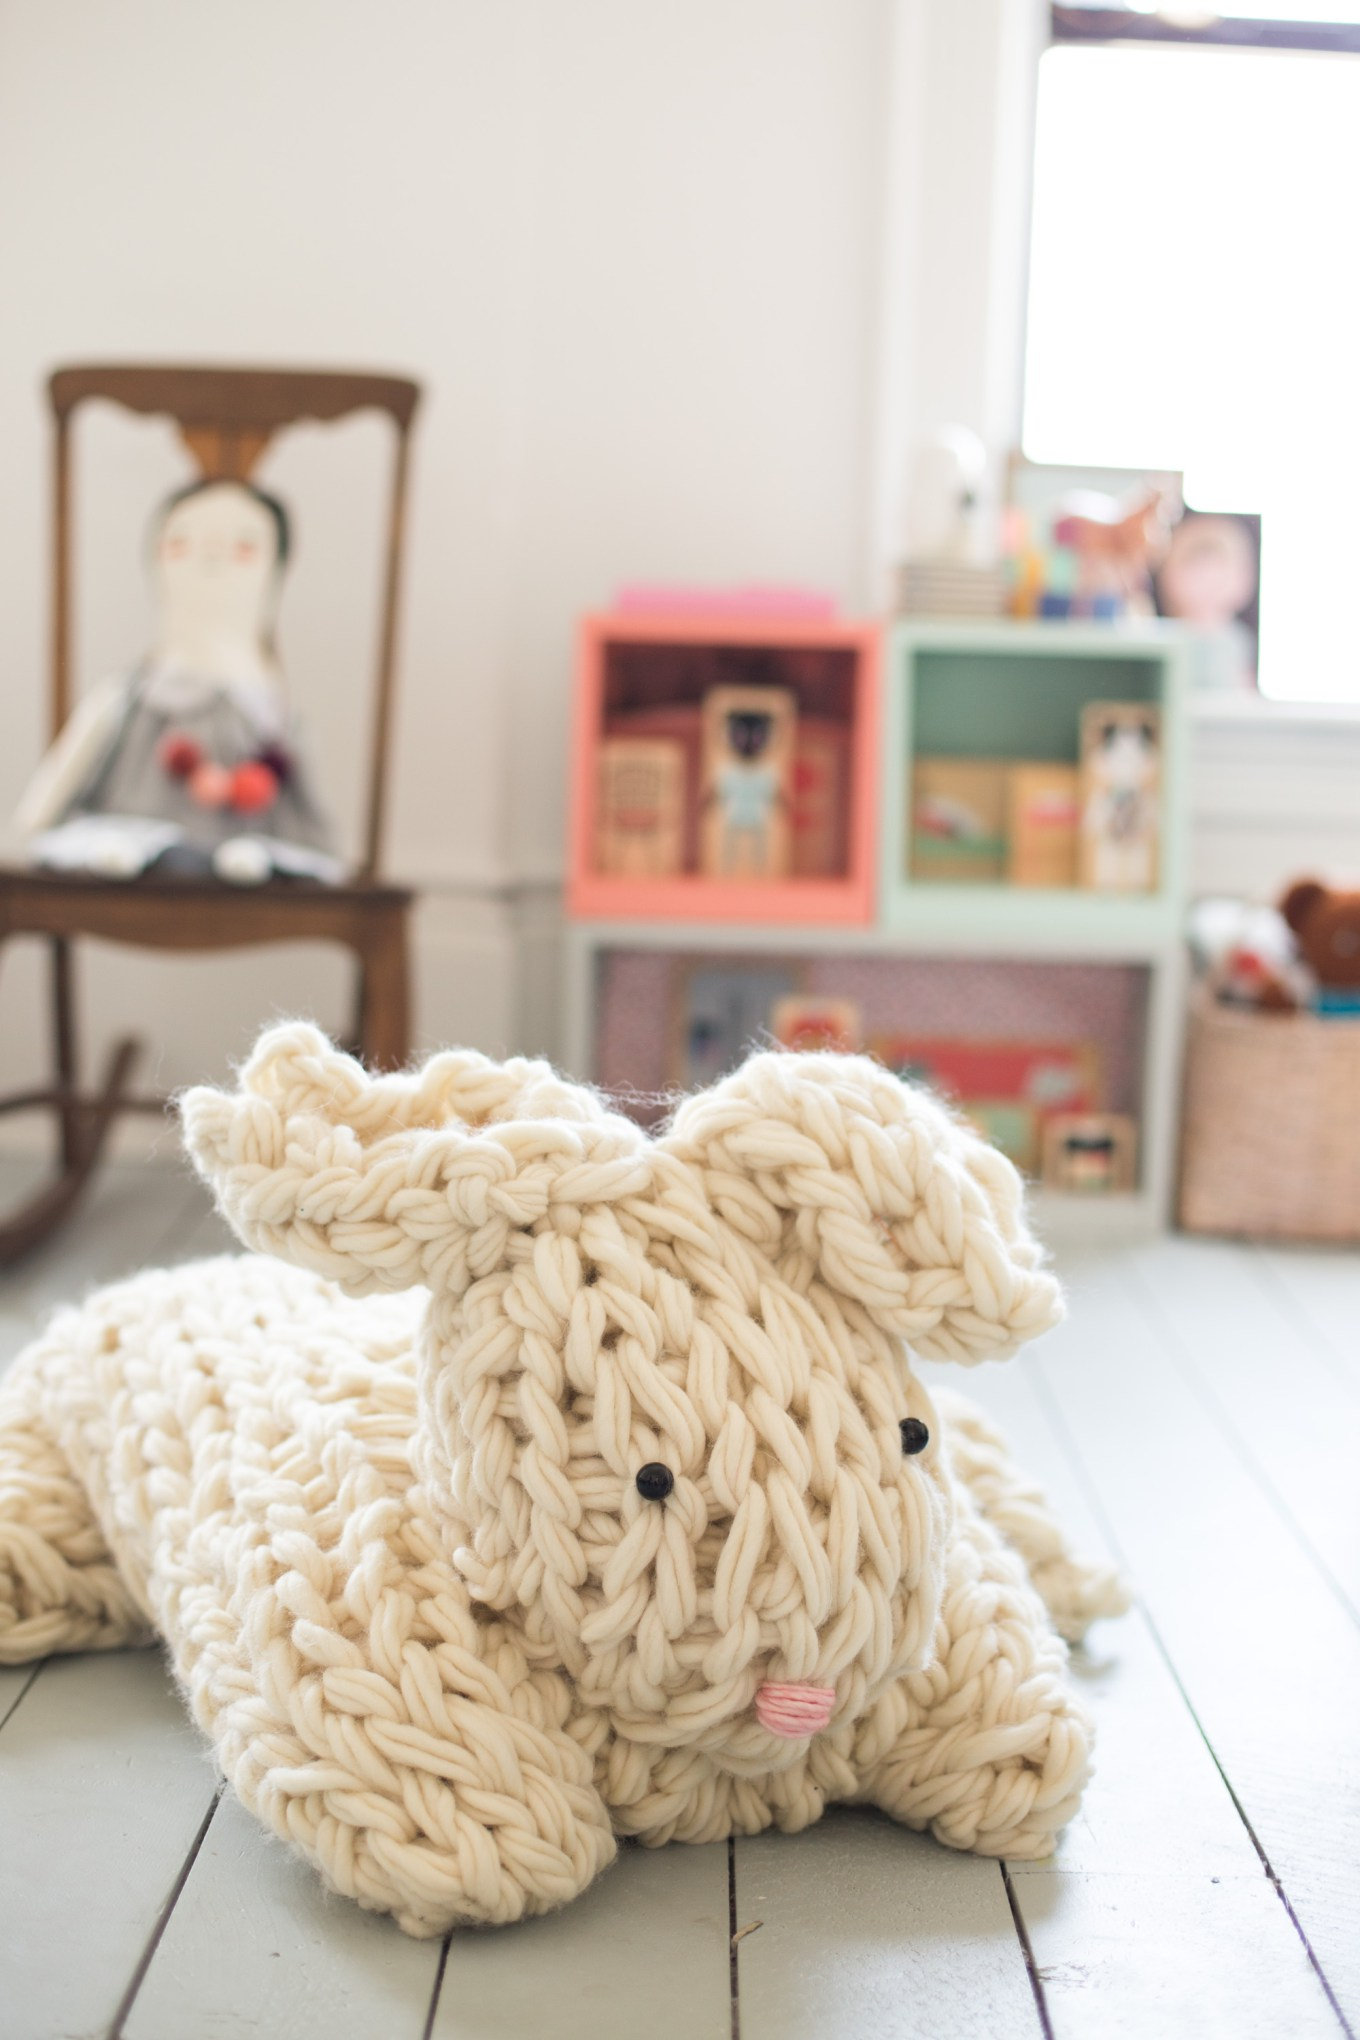 Giant Knitting With Arms : Giant arm knit bunny from flax and twine pattern